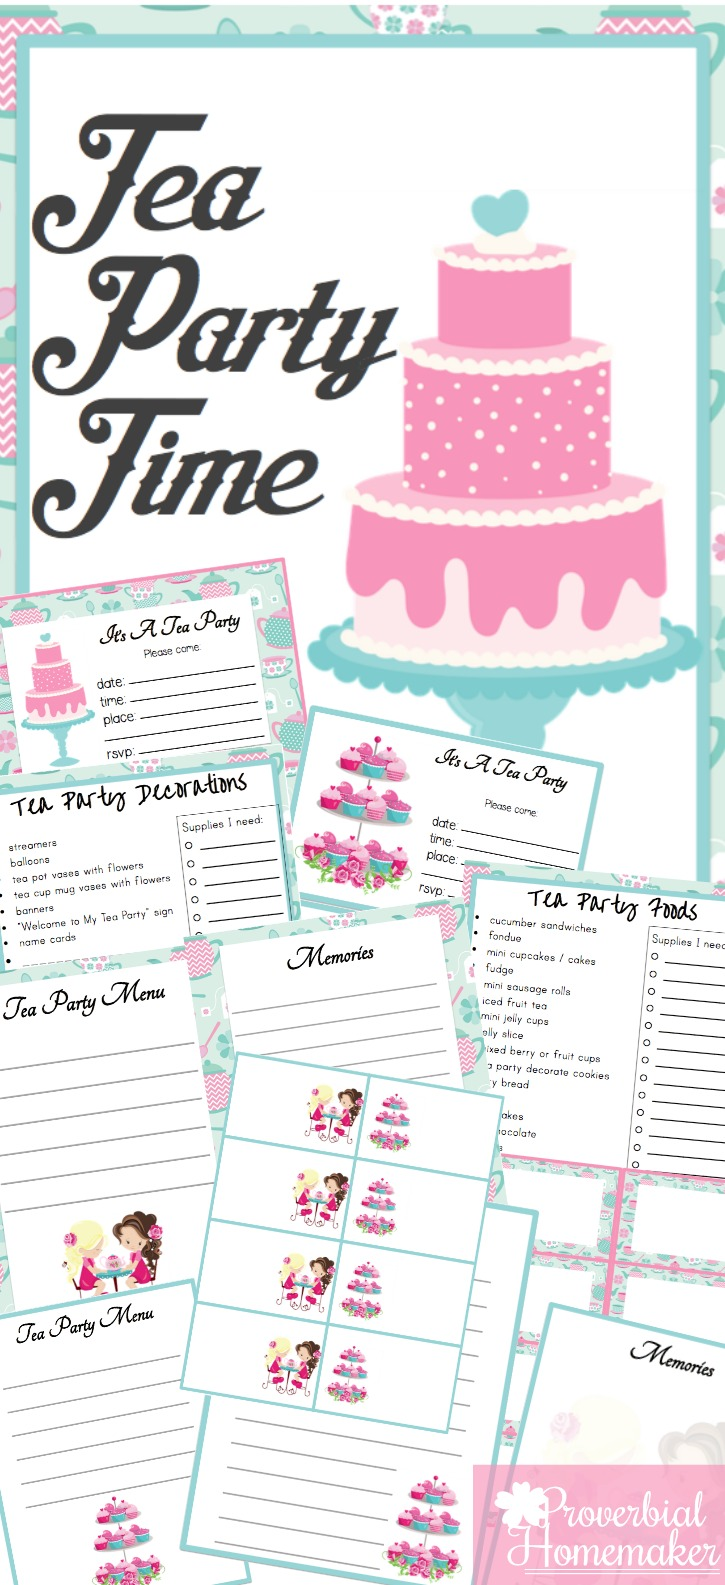 Tea Party Printable Pack with Food Menu